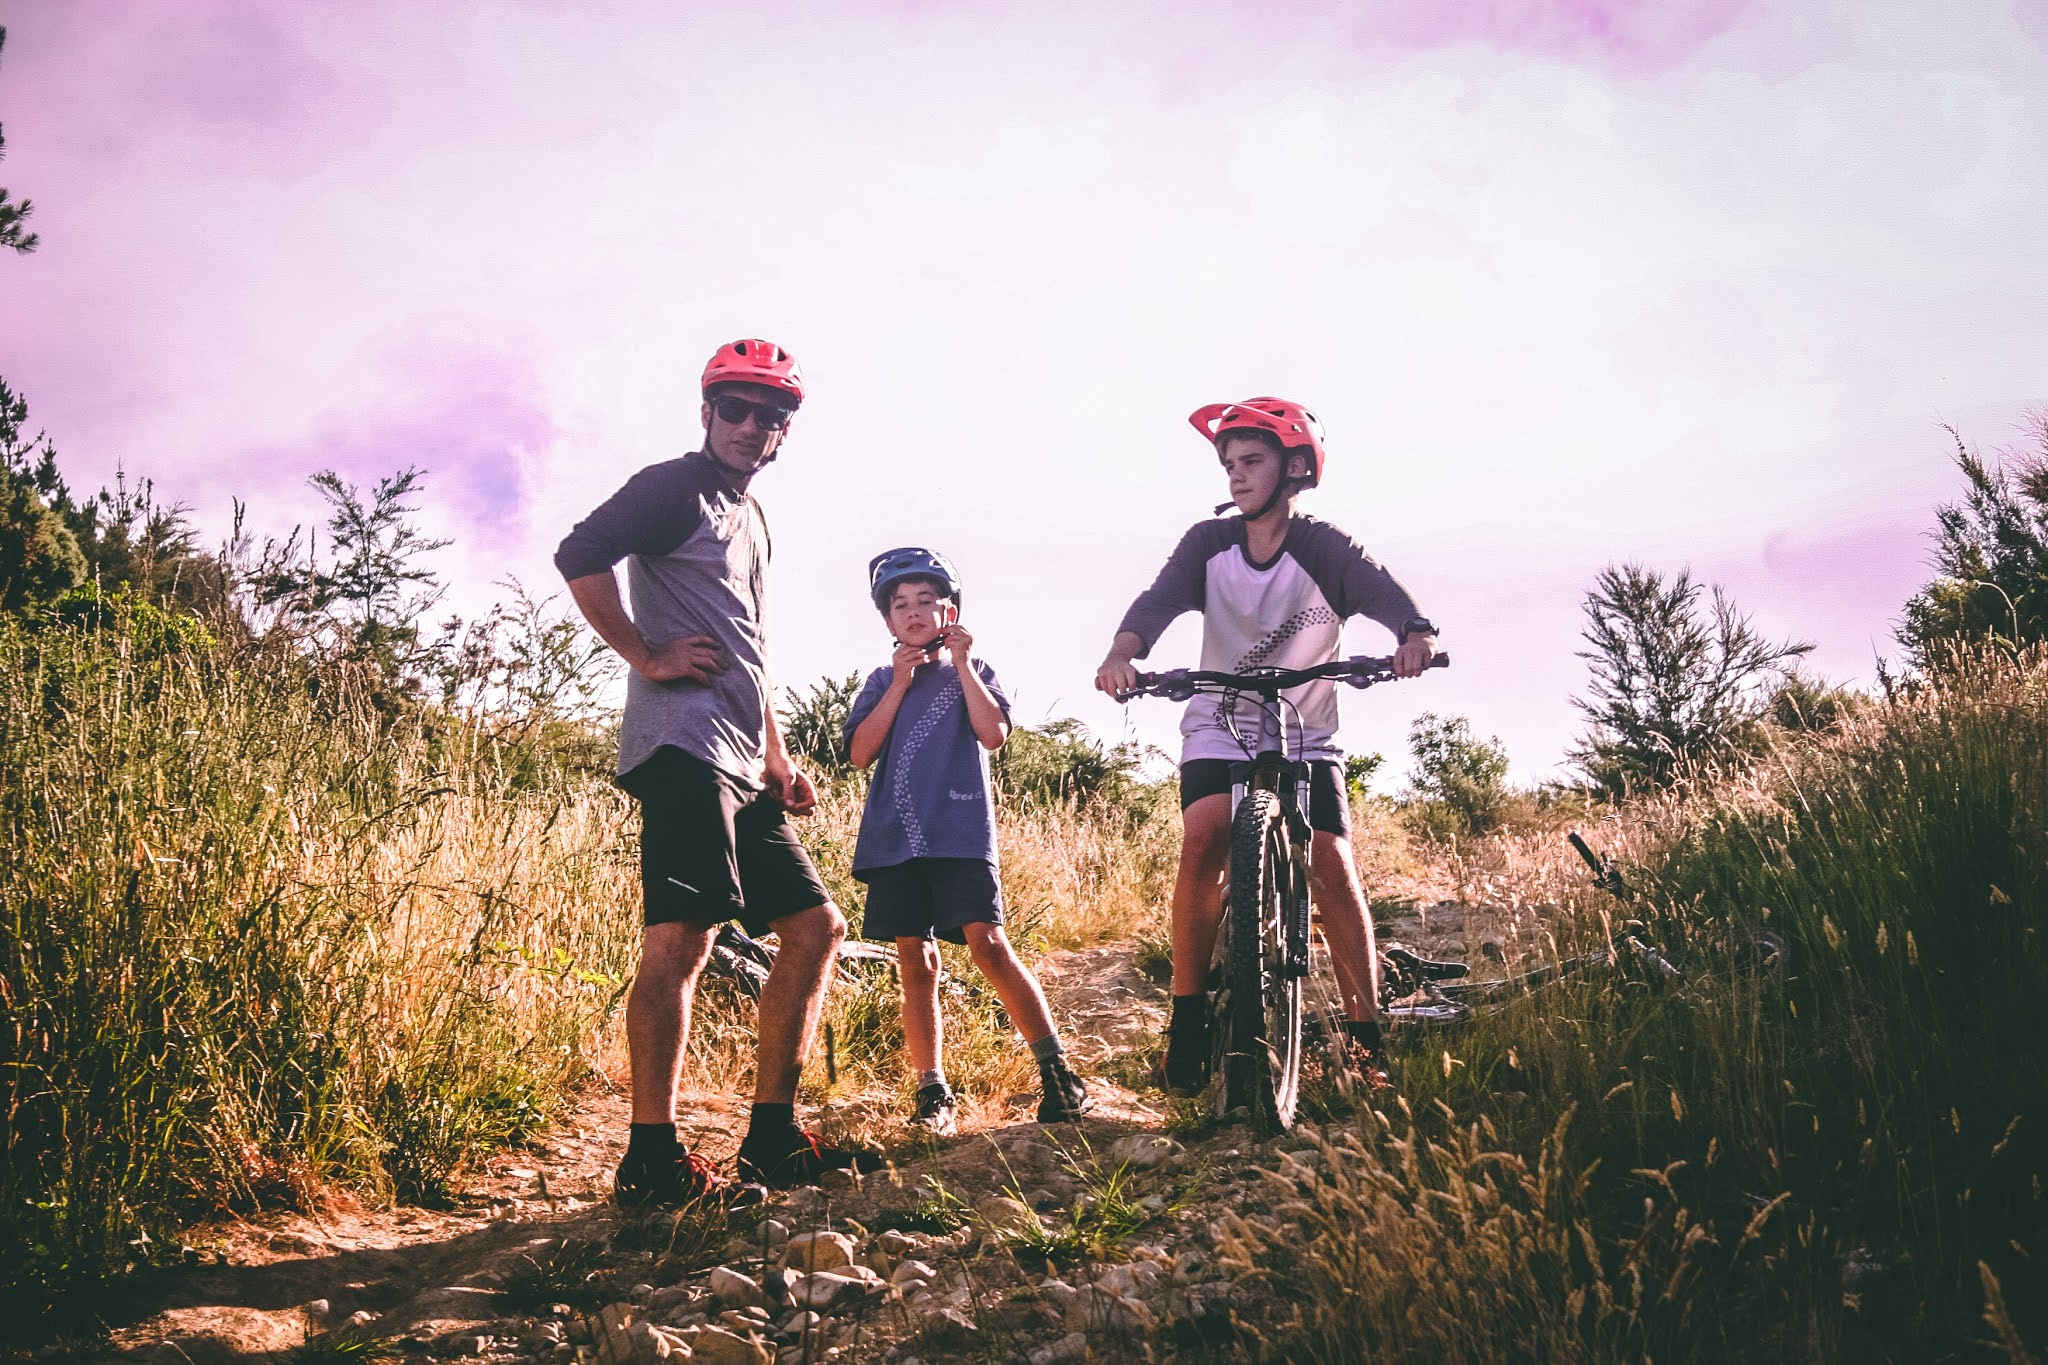 Outdoor Activities To Do With Your Kids